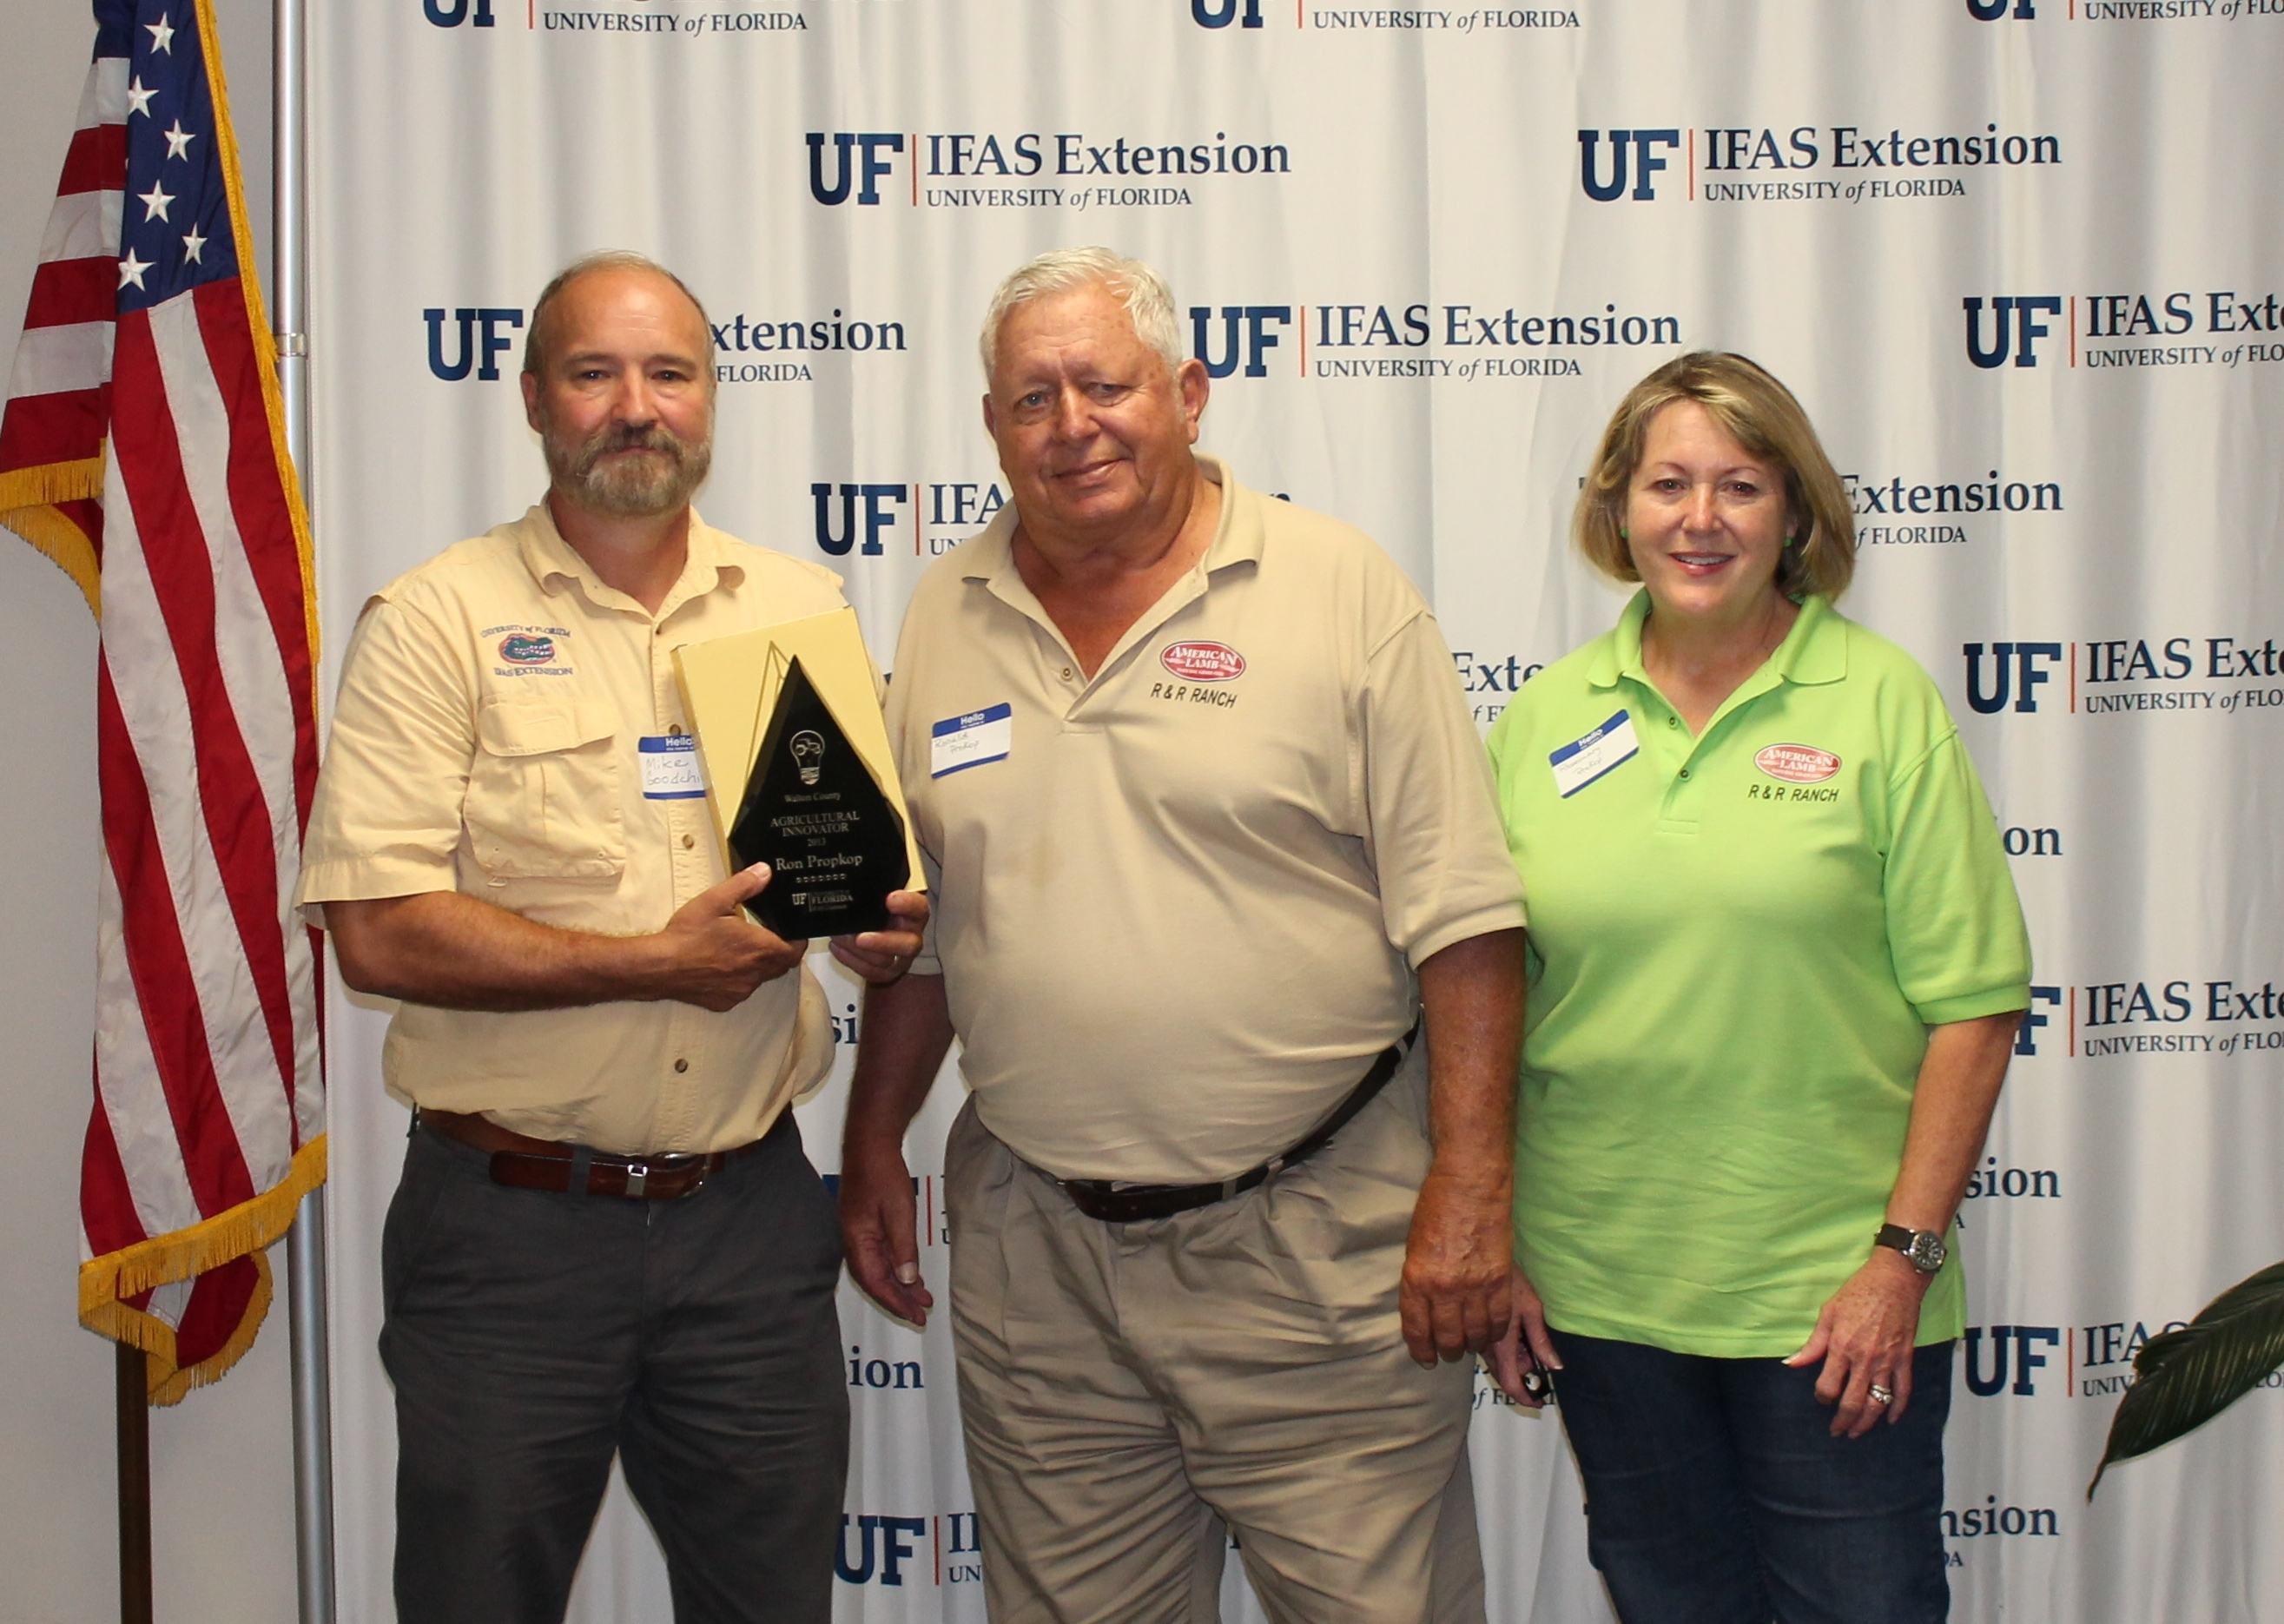 (From Left to Right) Walton County Extension Director Mike Goodchild, and Ron and Rosemary Prokop of R&R Ranch